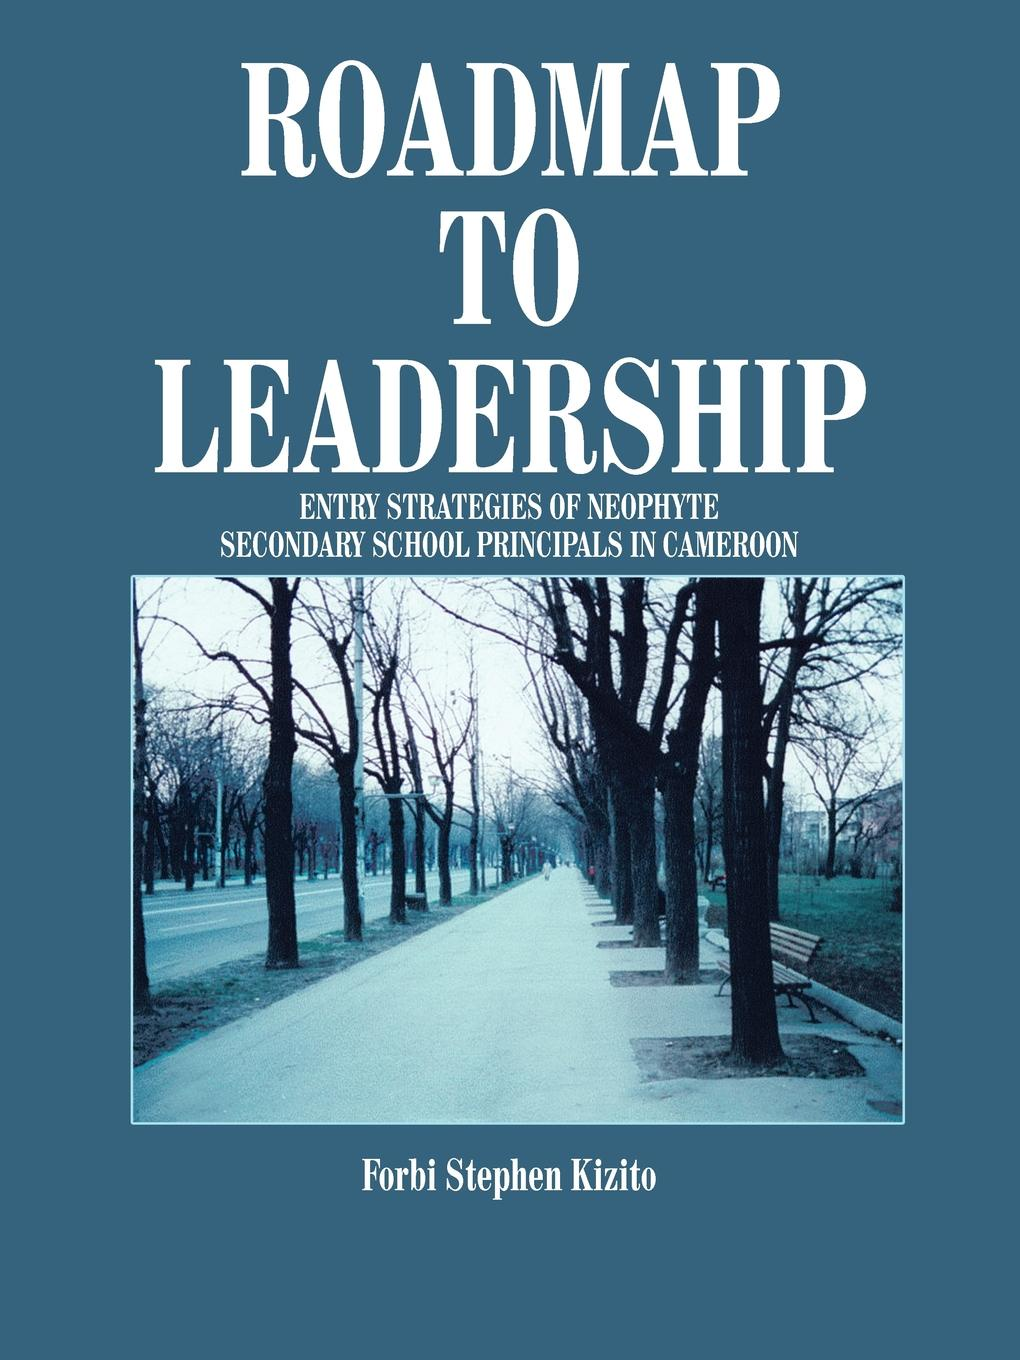 Forbi Stephen Kizito Roadmap to Leadership. Entry Strategies of Neophyte door entry systems